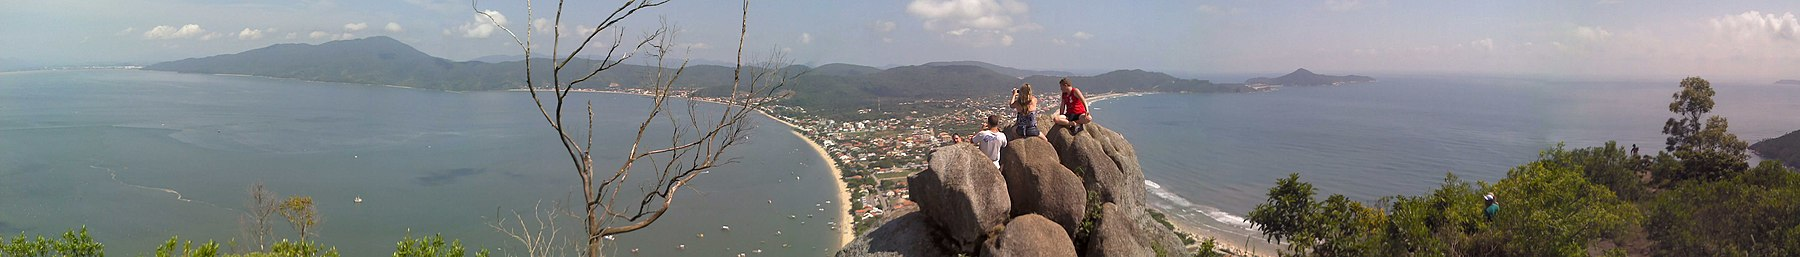 Morro do Macaco - panoramio (cropped).jpg